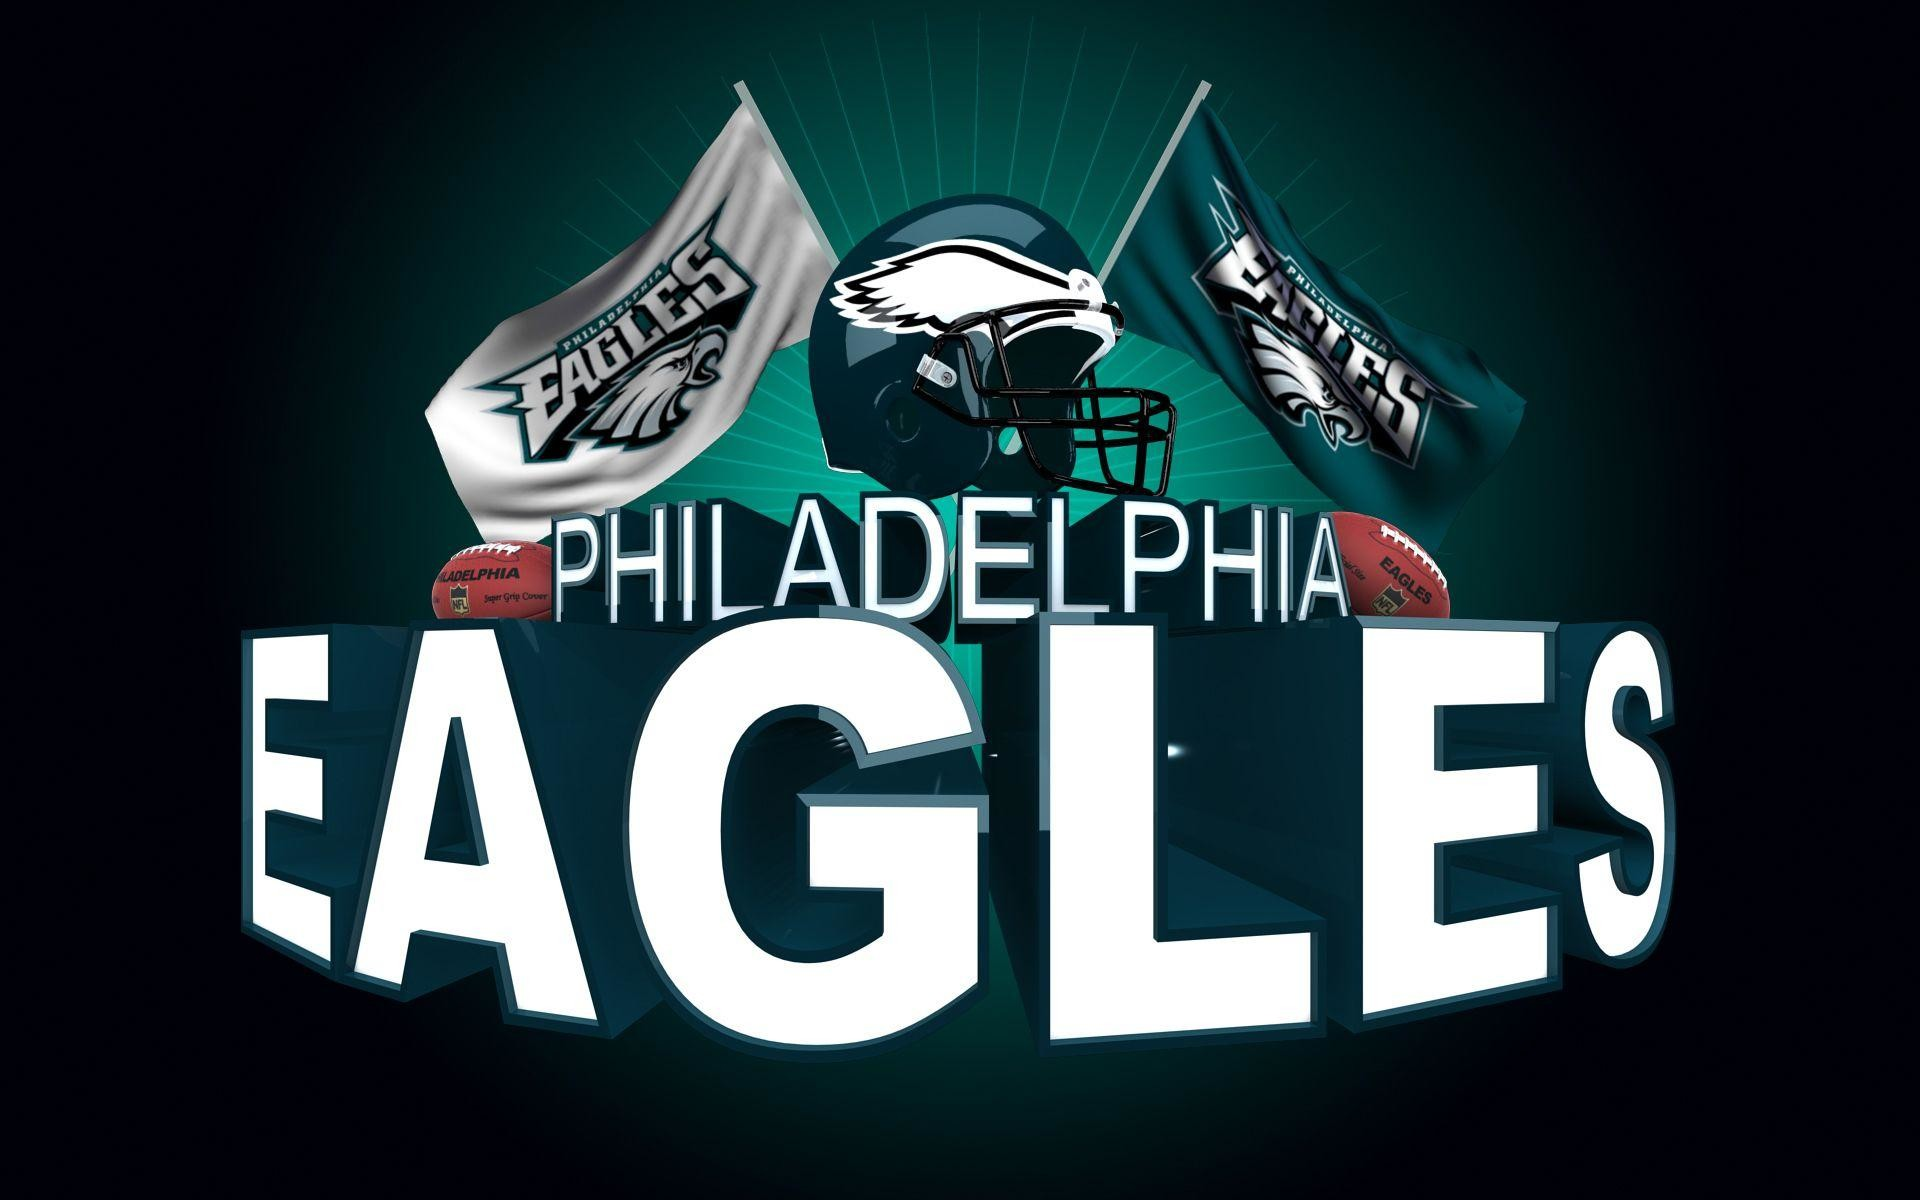 1920x1200 Best 20 Philadelphia eagles logo ideas on Pinterest